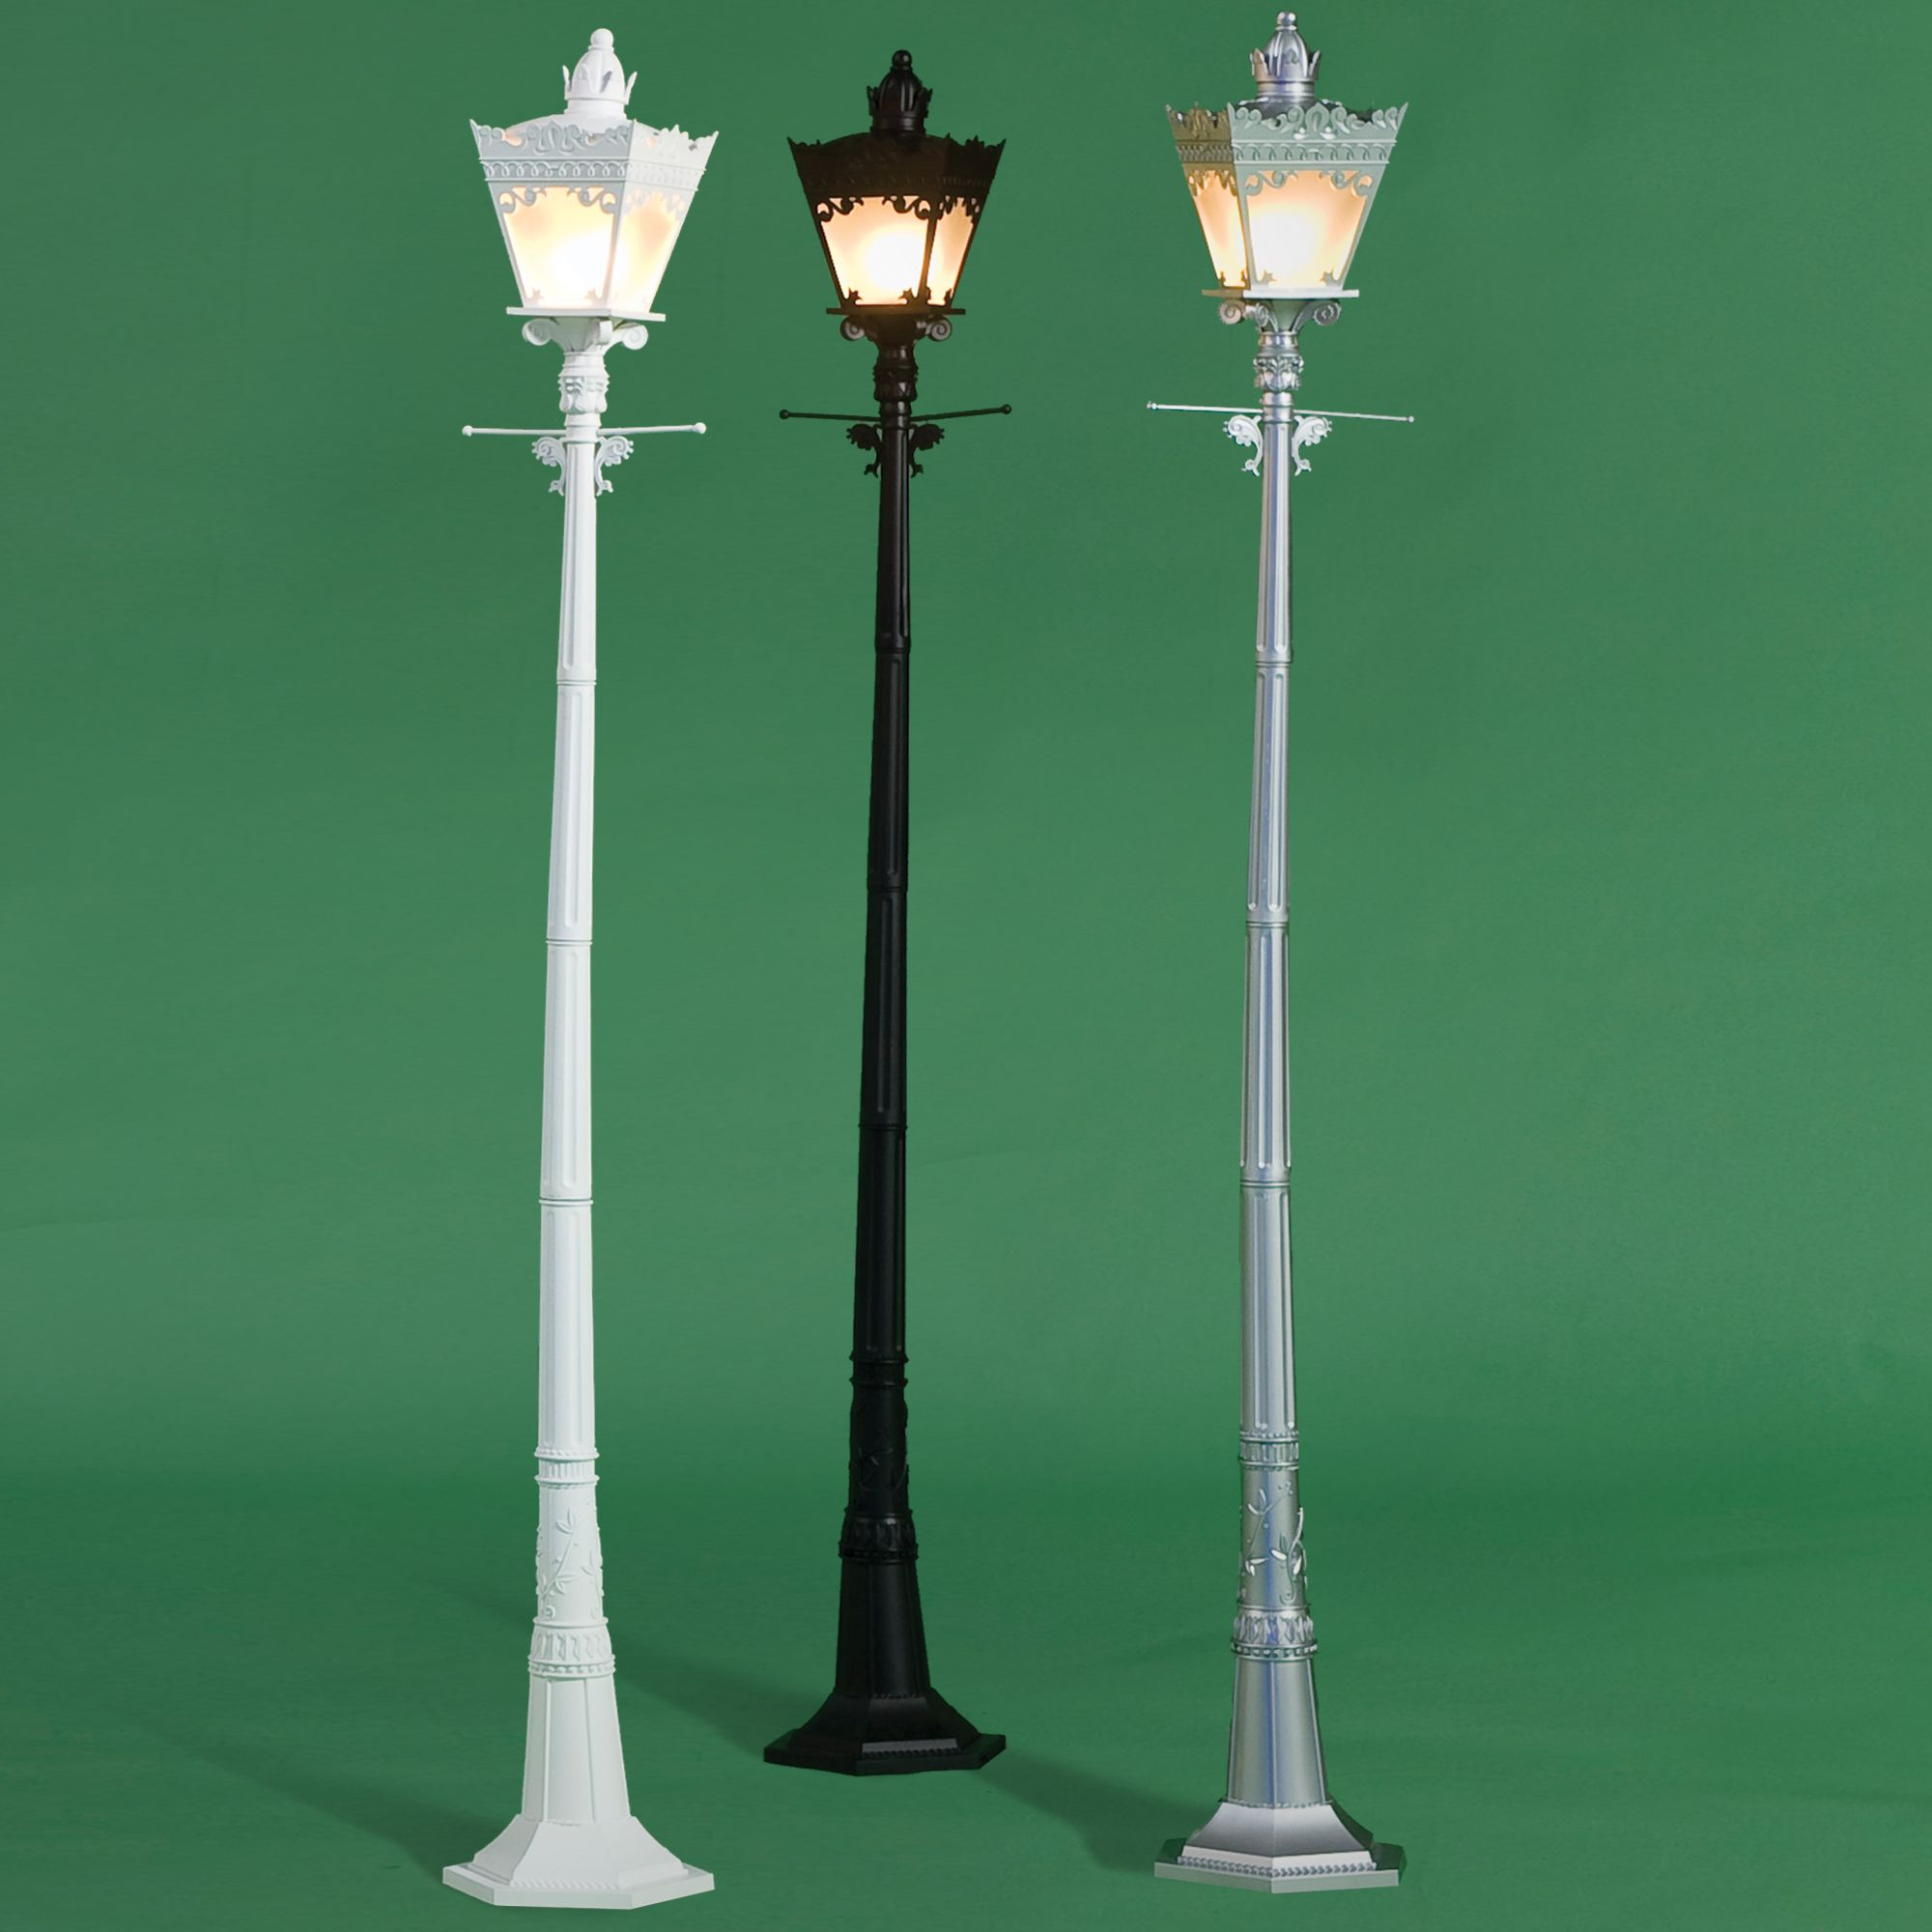 Buy A Decorative City Street Light These Realistic Plastic Lamp